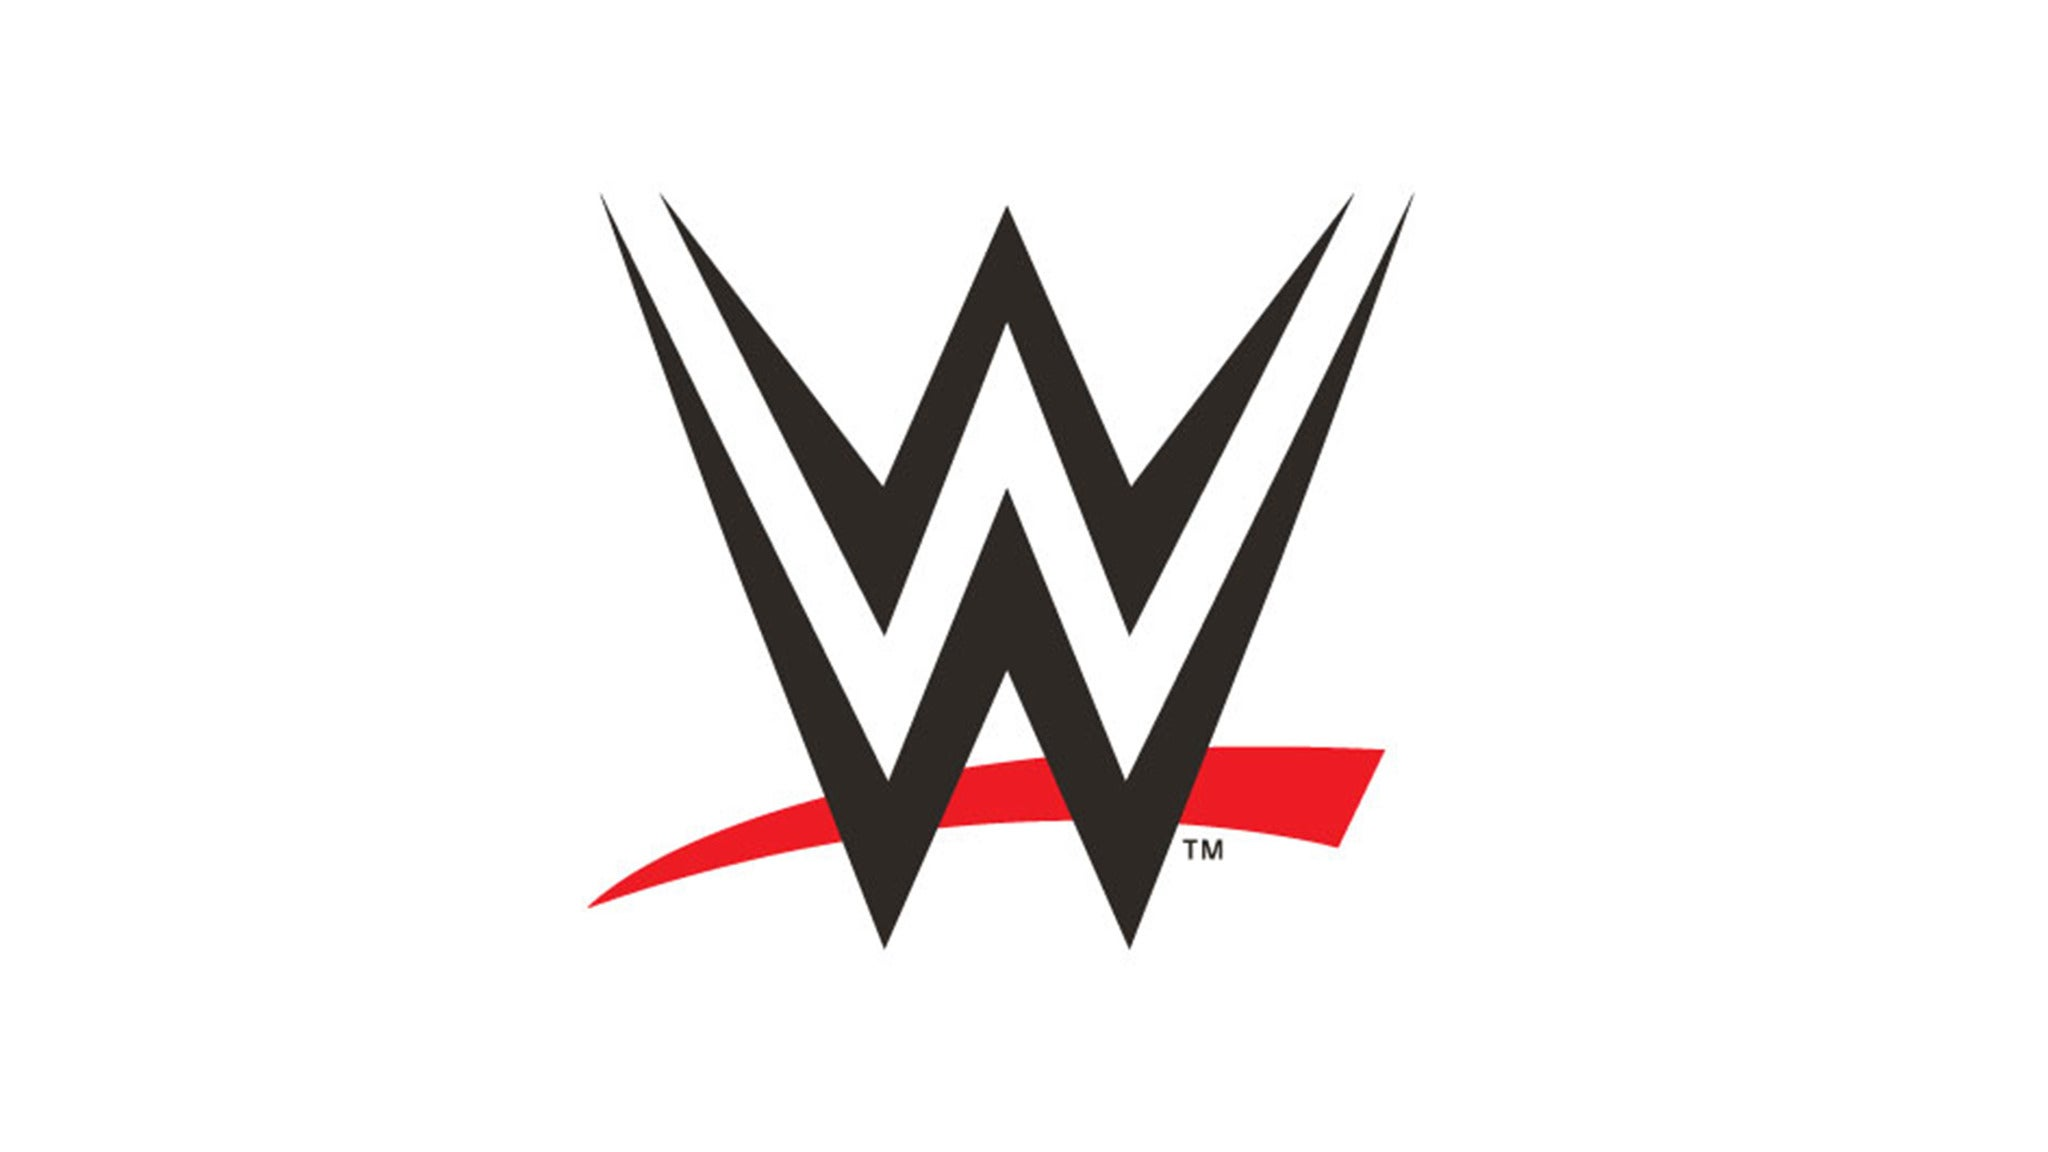 WWE - World Wrestling Entertainment at Wicomico Civic Center